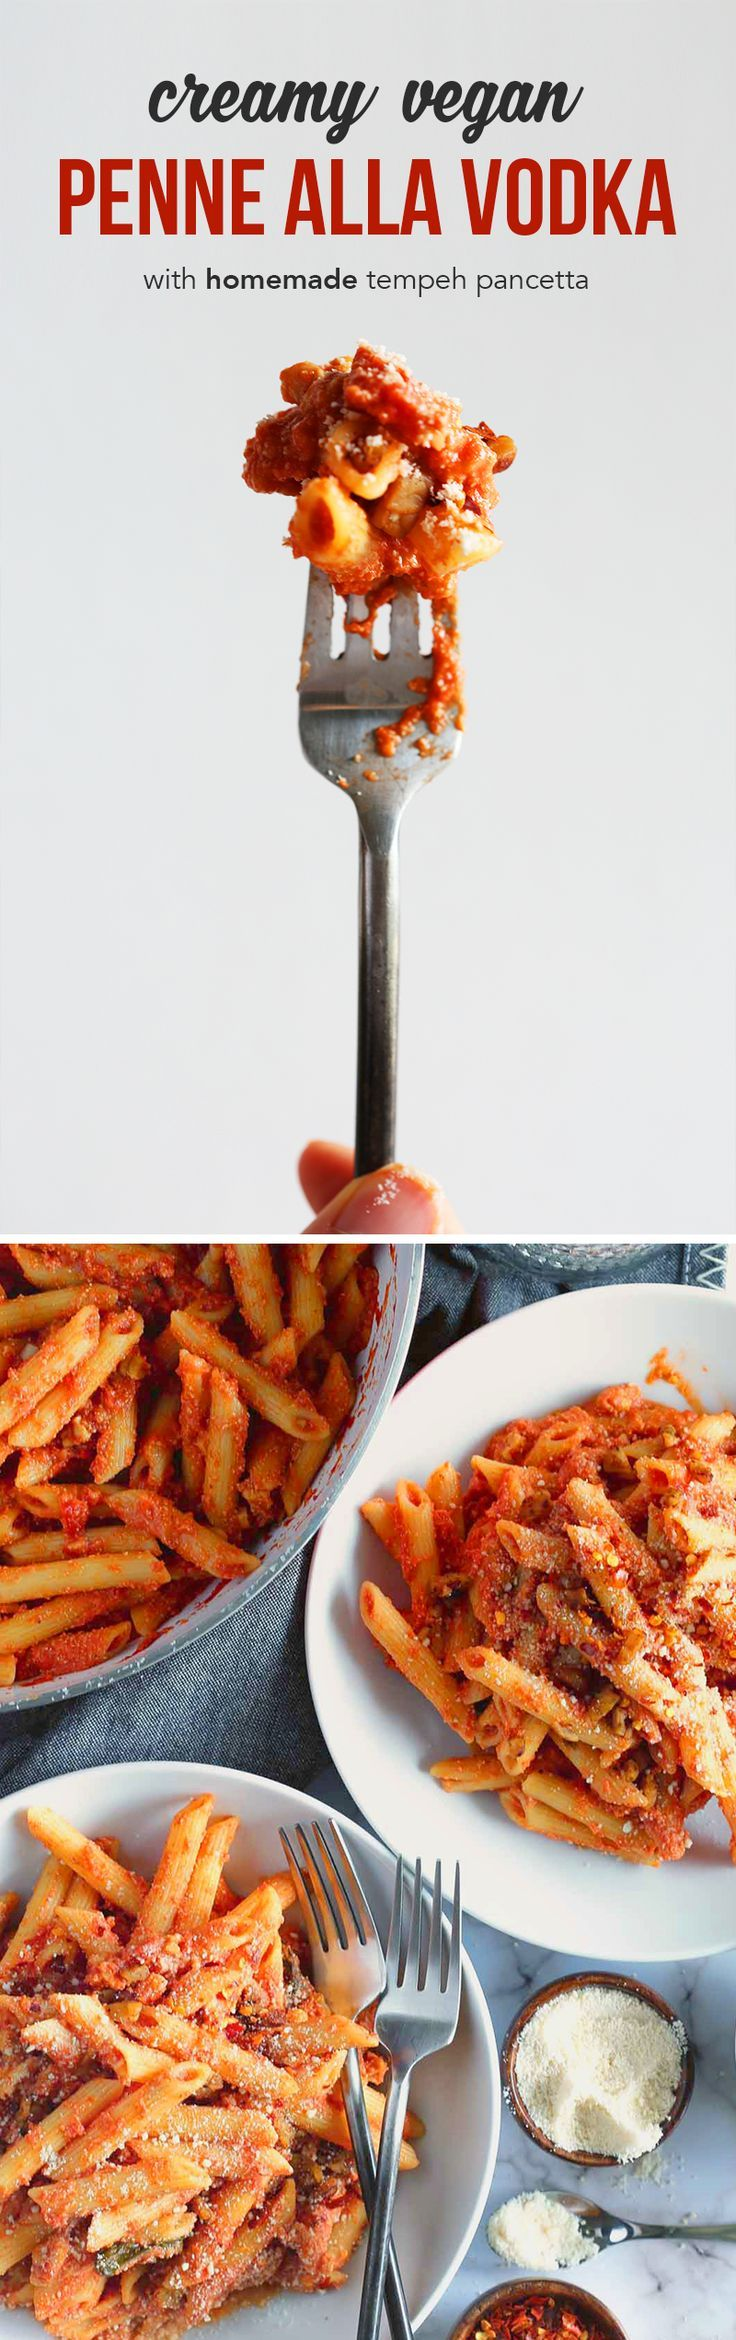 "This Vegan Penne alla Vodka is super creamy and packed with protein from the smoky tempeh ""pancetta."""